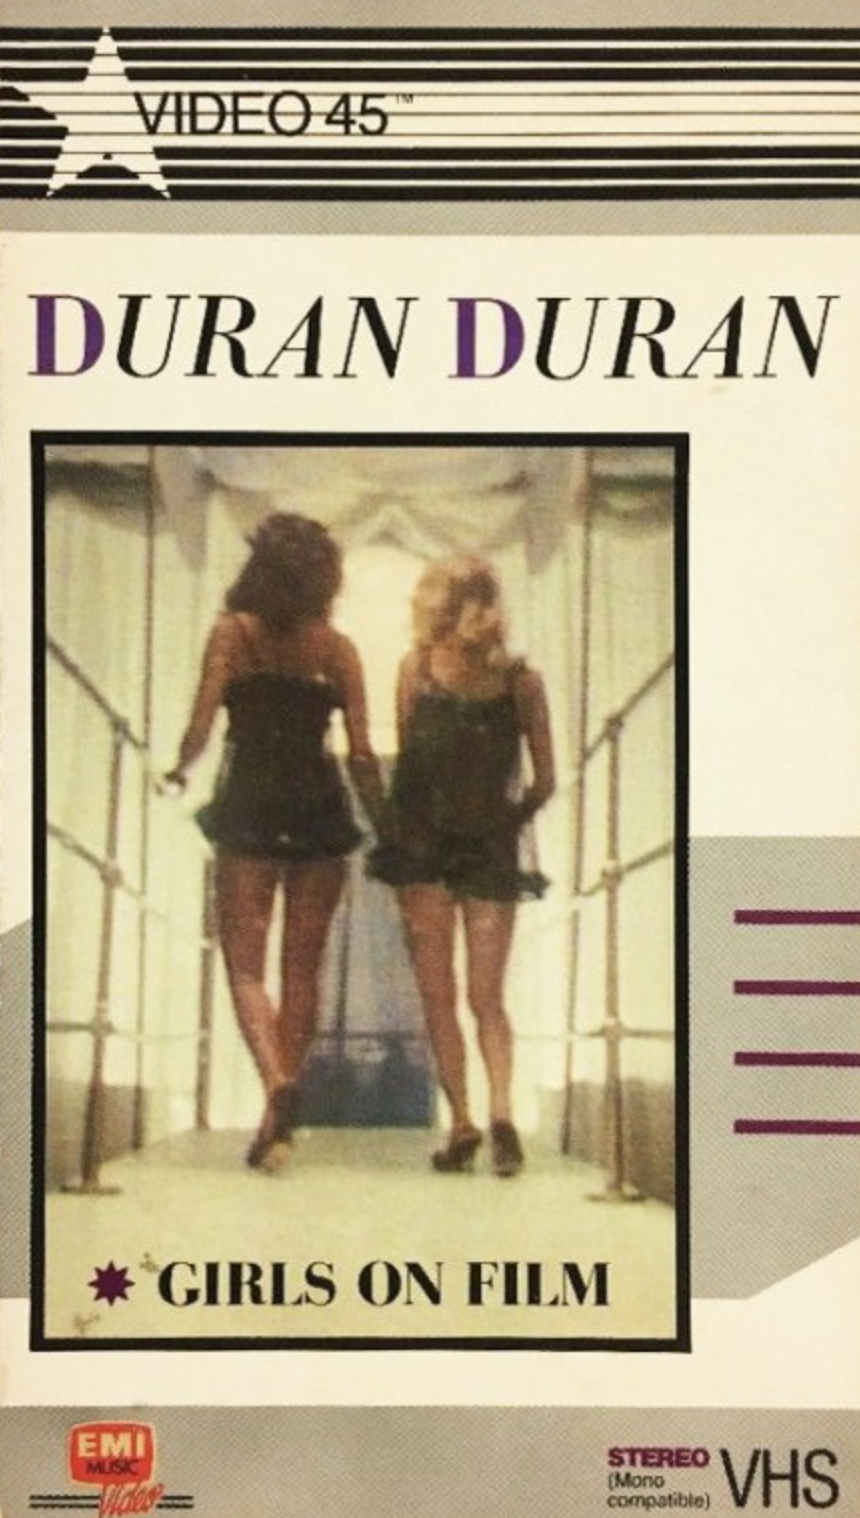 Duran Duran's home video for